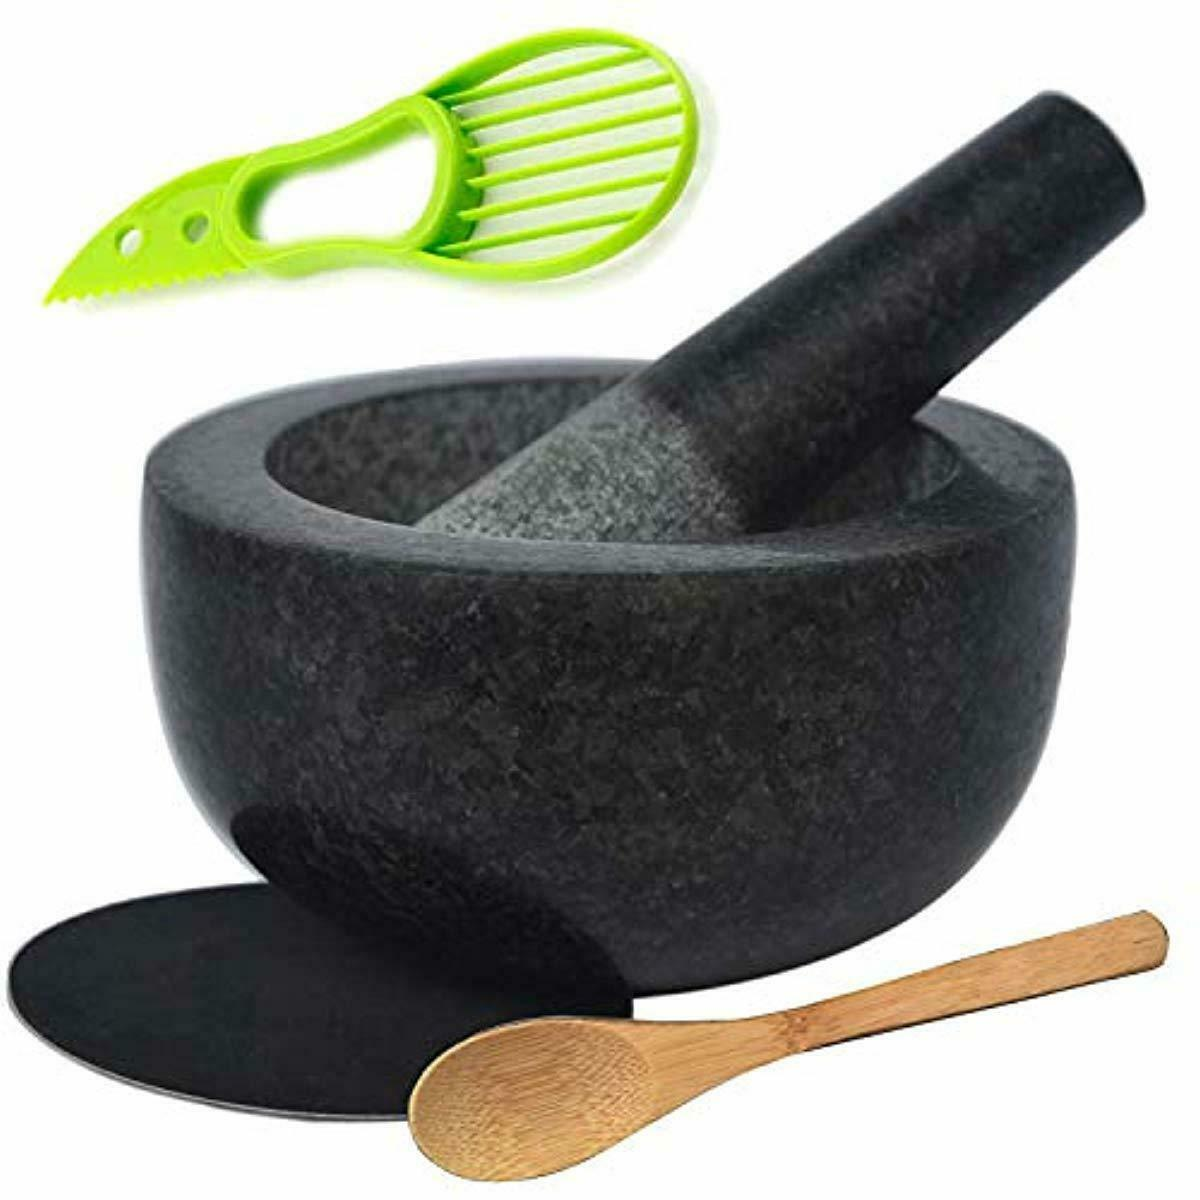 60mm Exceart Glass Mortar and Pestle Set Guacamole Bowl for Spices Seasonings Pastes Herbs Pestos